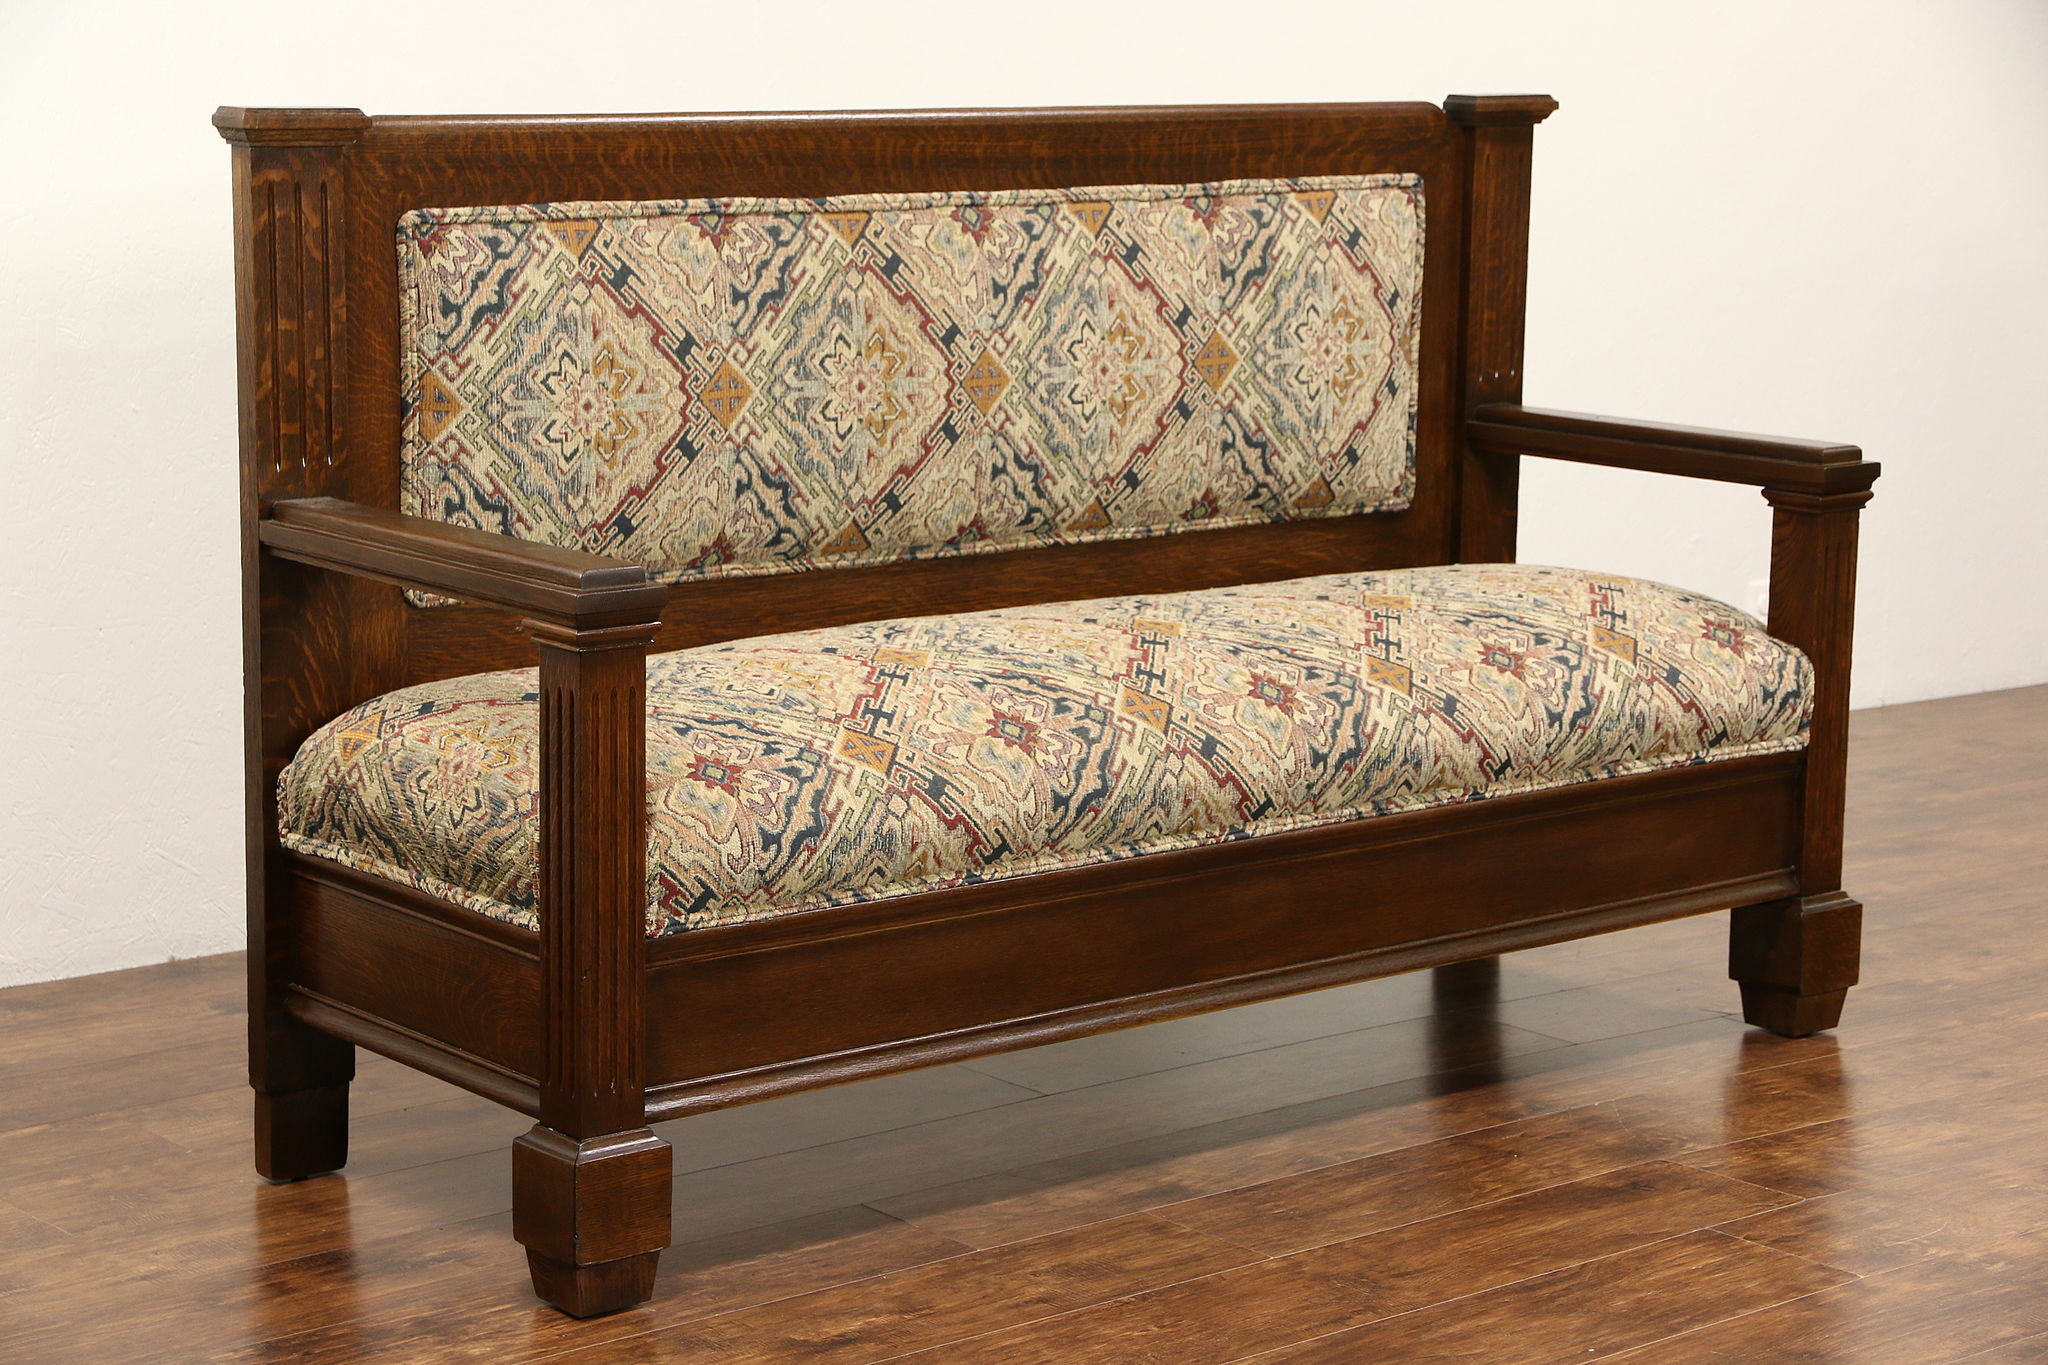 Sold Oak 1900 Antique Hall Bench Or Settee New Upholstery Harp Gallery Antique Furniture